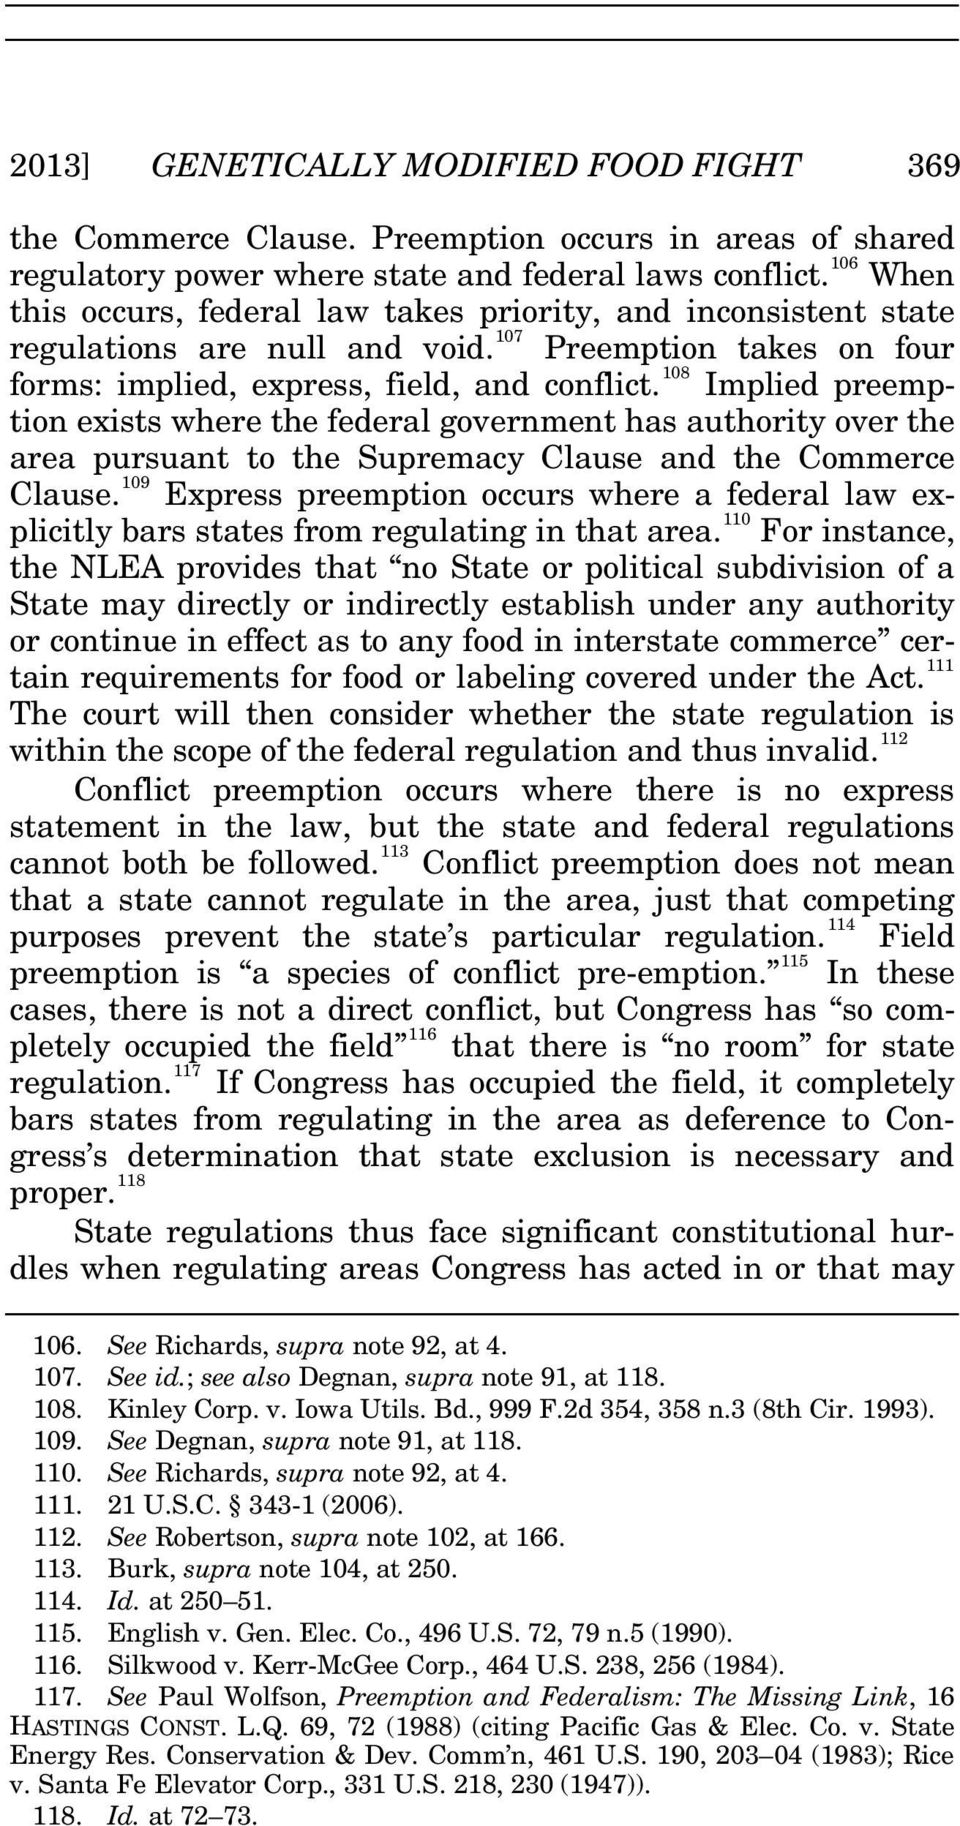 108 Implied preemption exists where the federal government has authority over the area pursuant to the Supremacy Clause and the Commerce Clause.